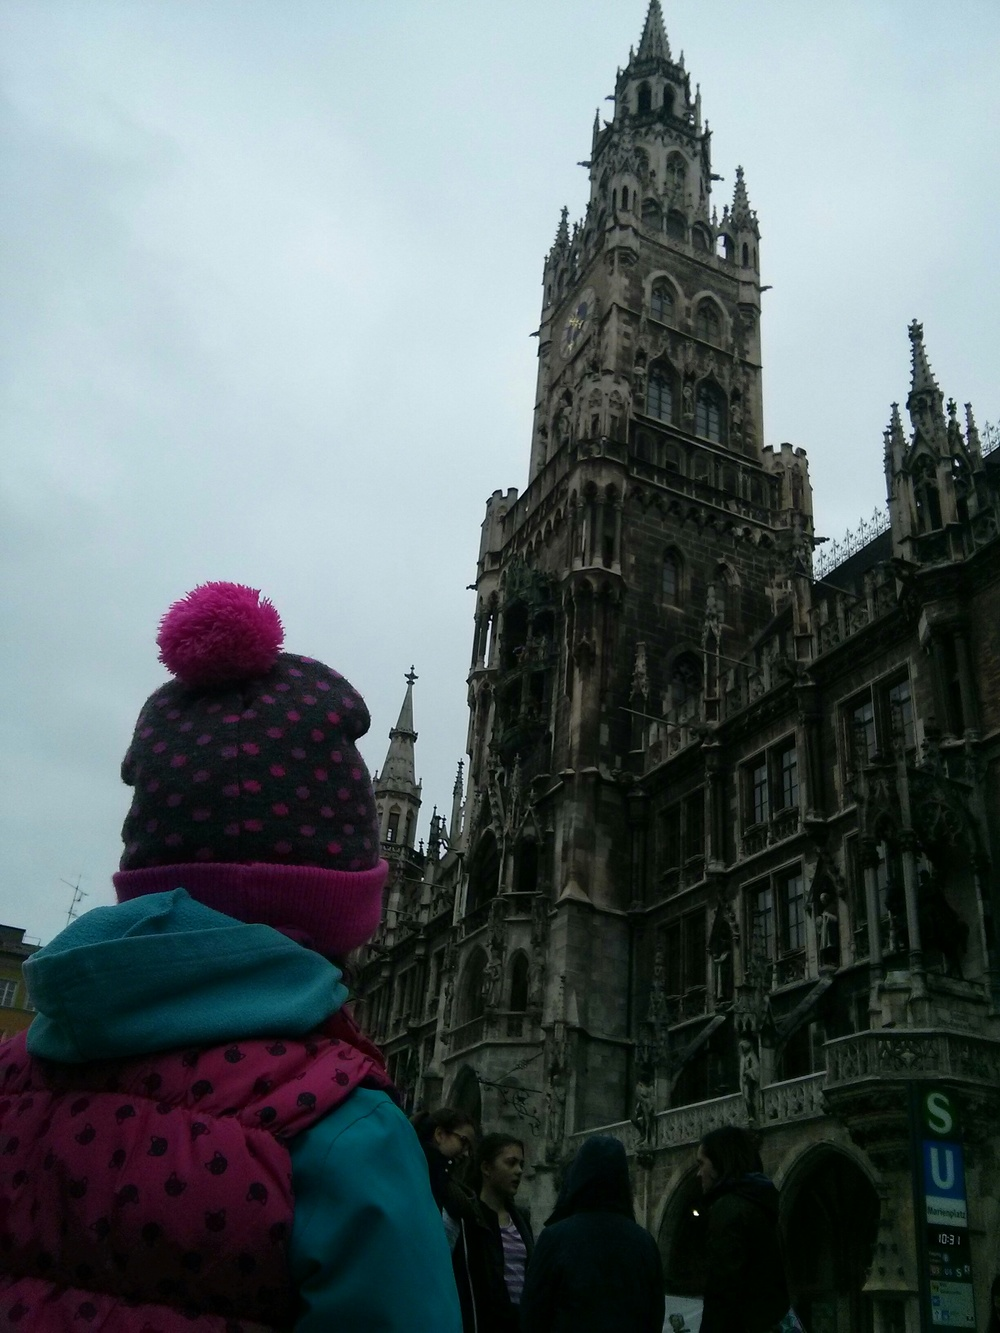 Looking at the Muenchen Rathaus (Munich city hall)